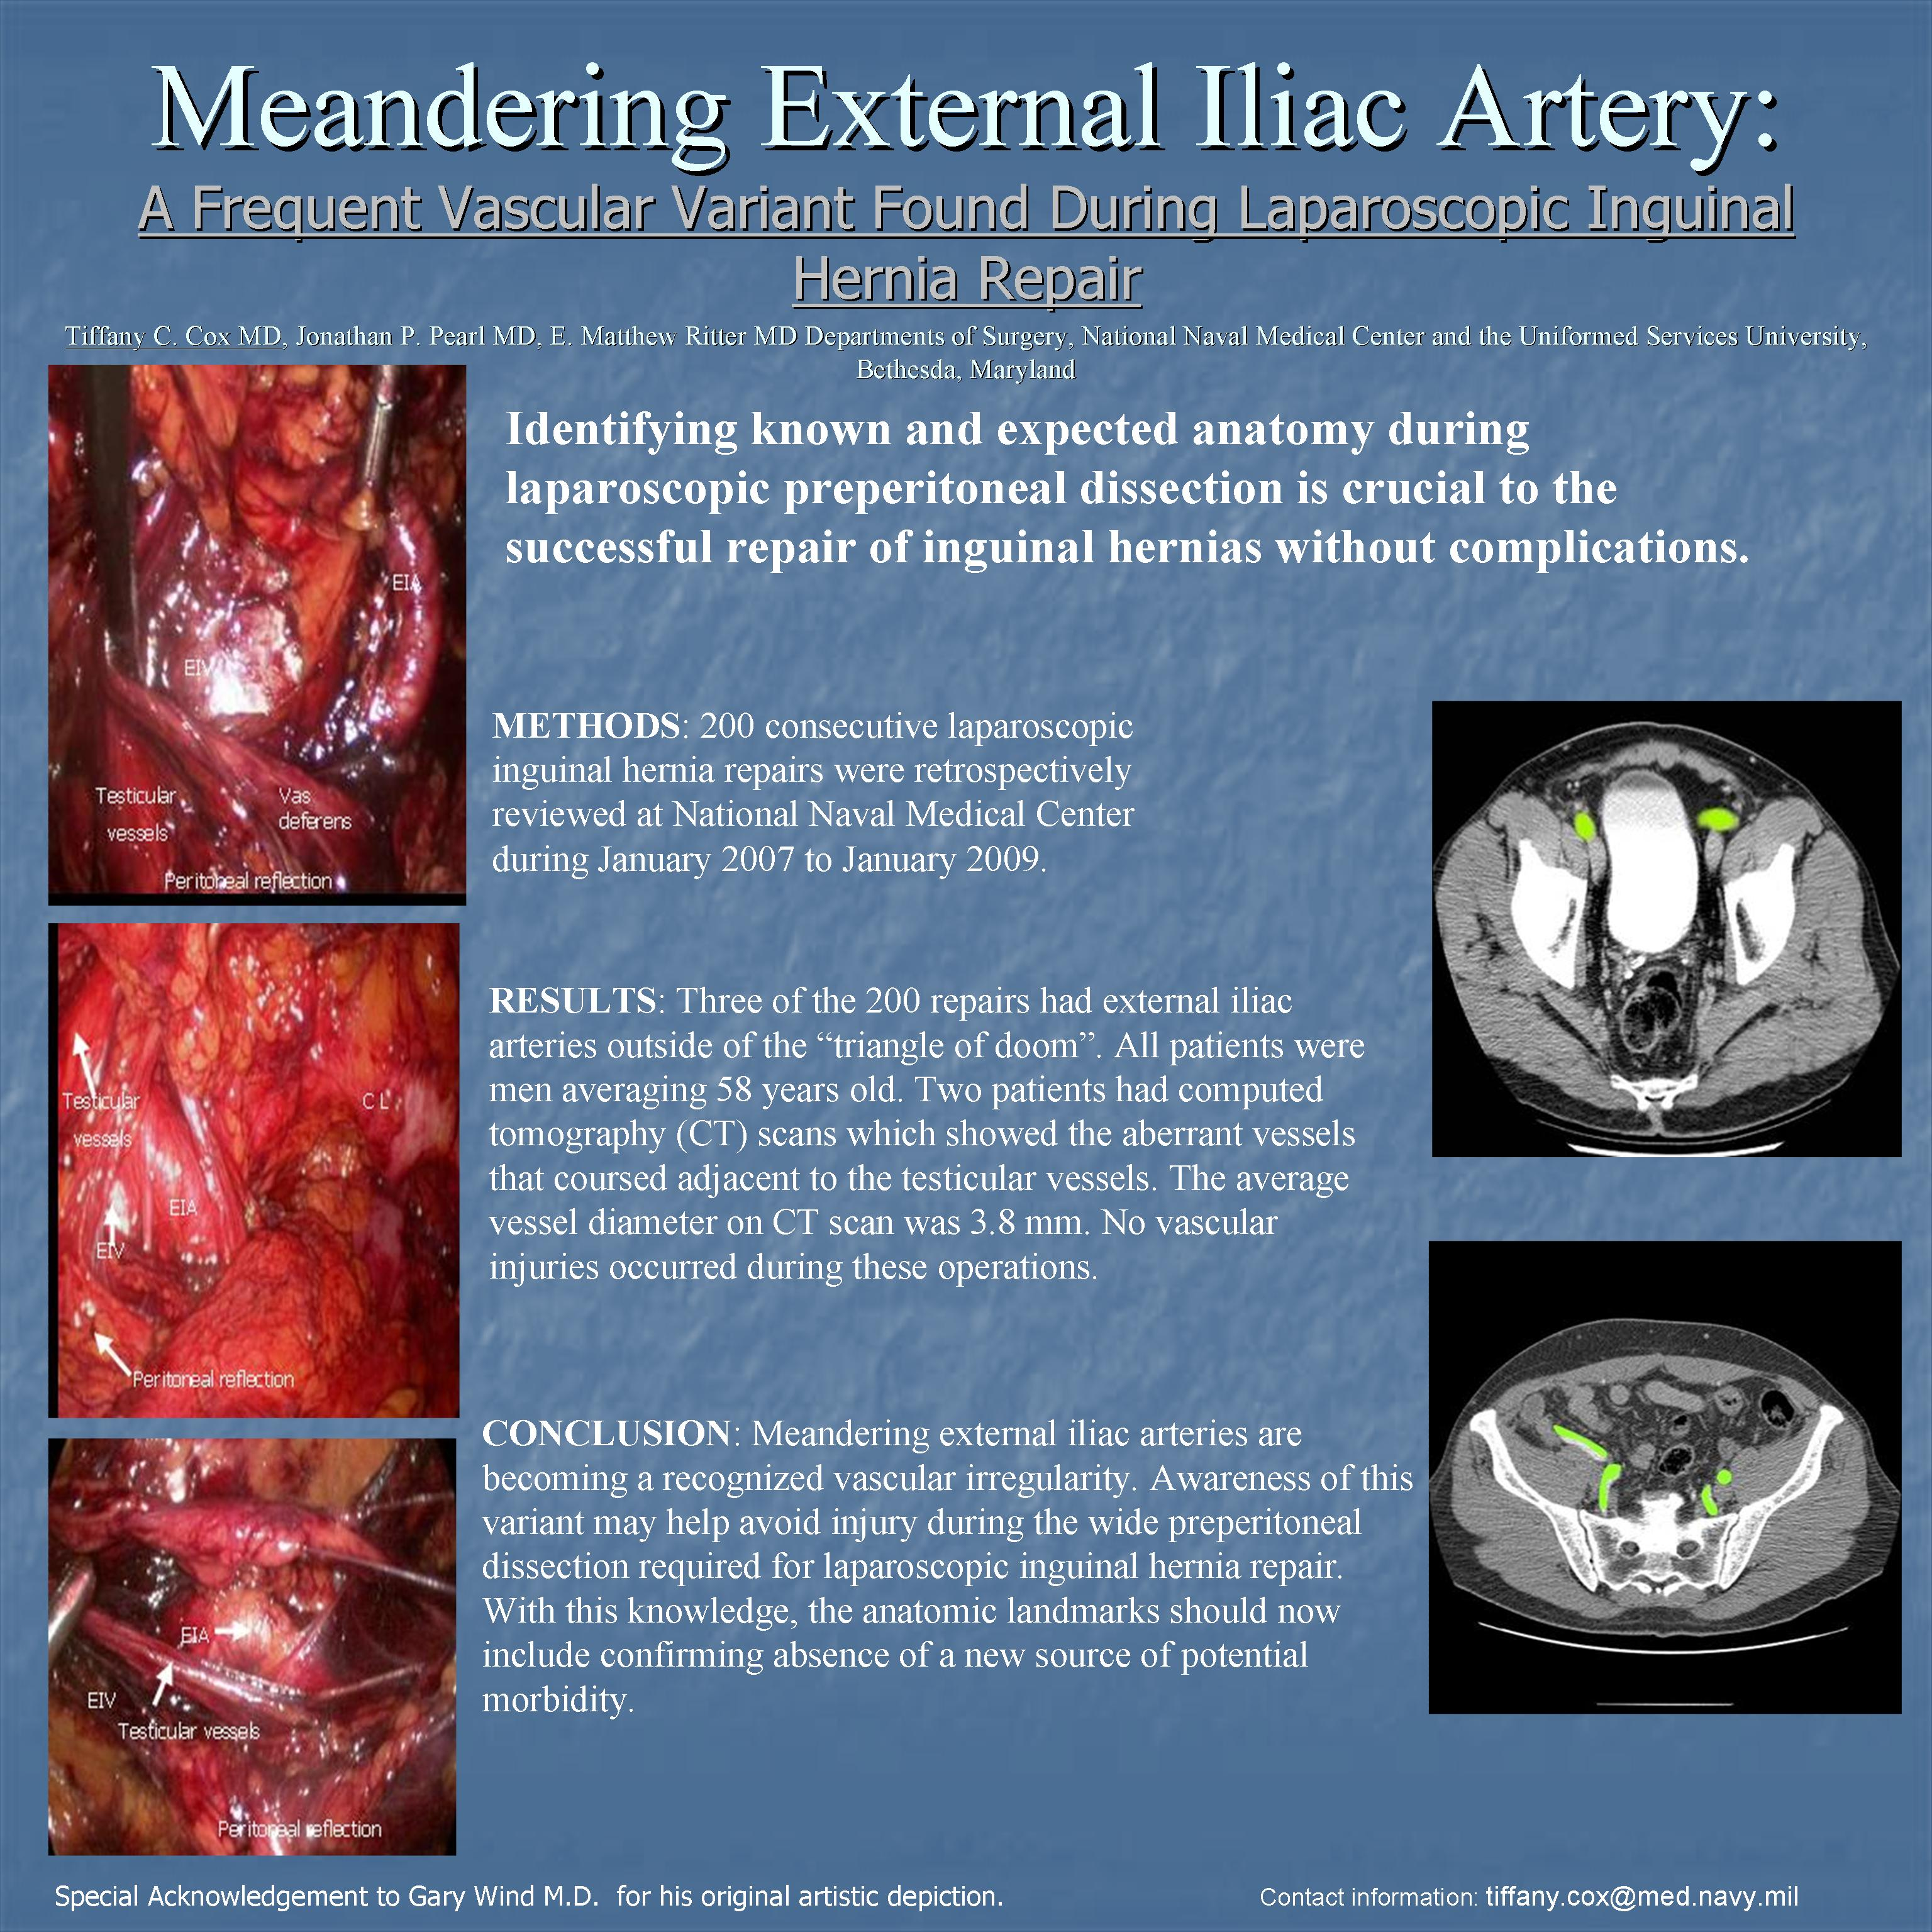 Meandering External Iliac Artery: A Frequent Vascular Variant Found ...